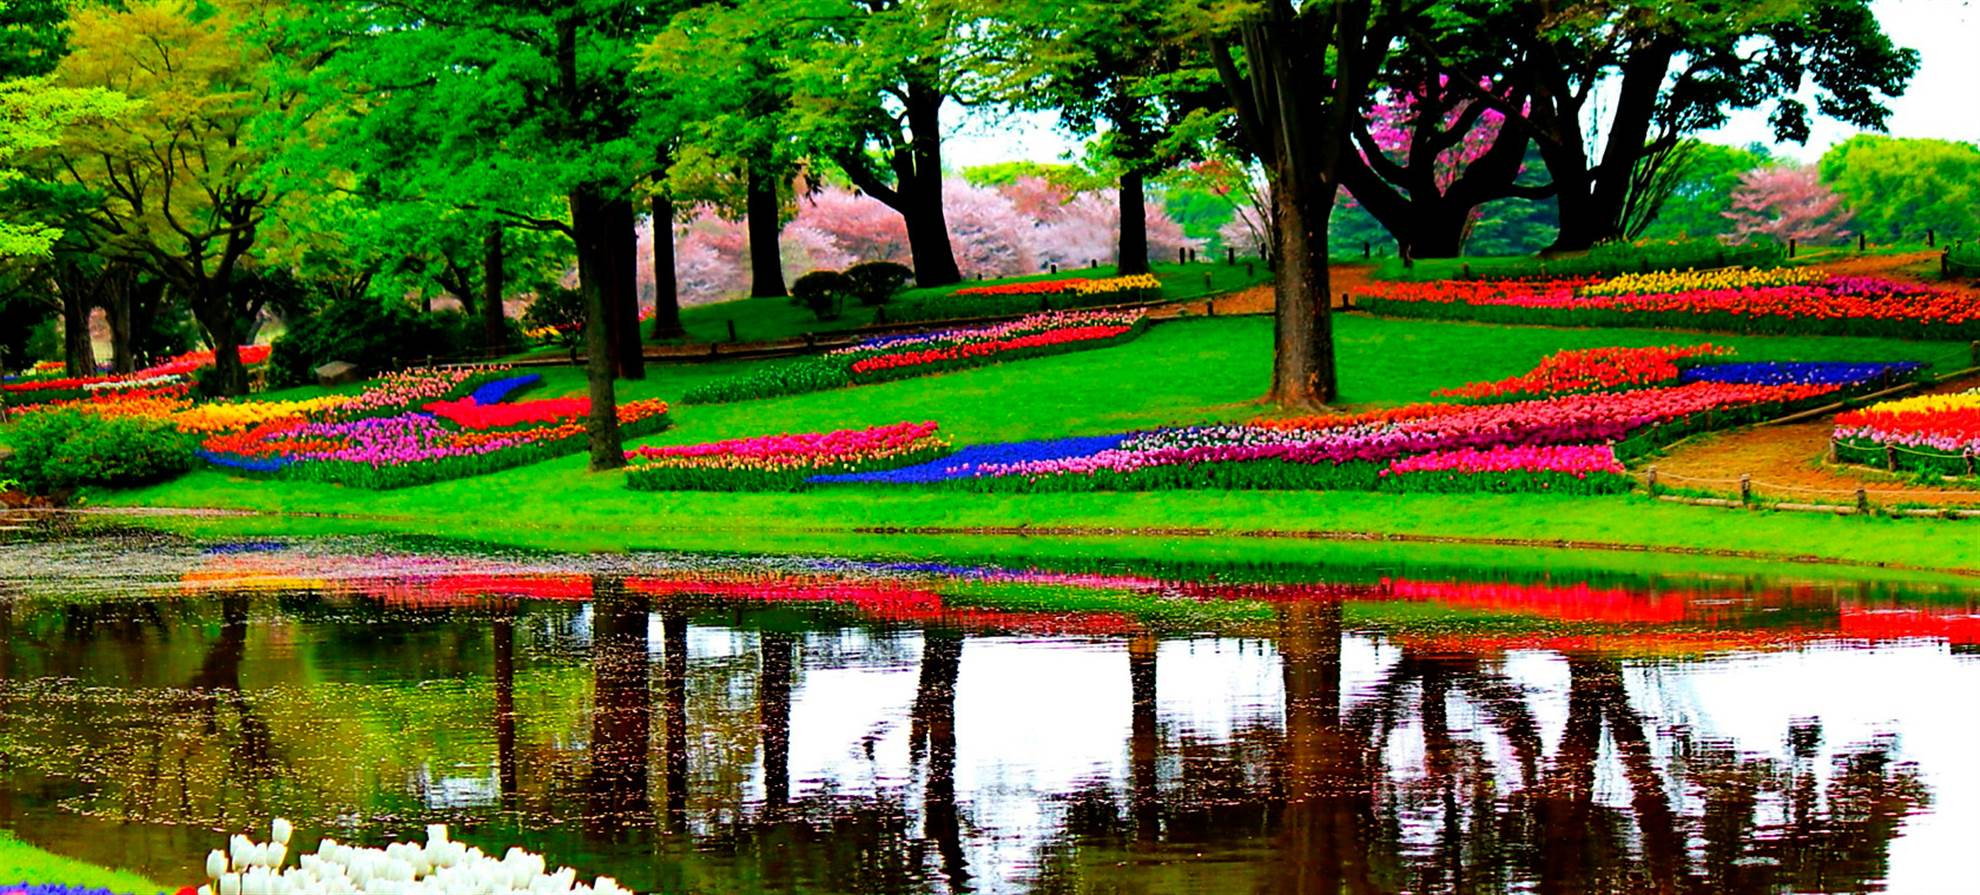 Keukenhof Bus Trip with Live Guide On-board (Including Skip-the-line Tickets)